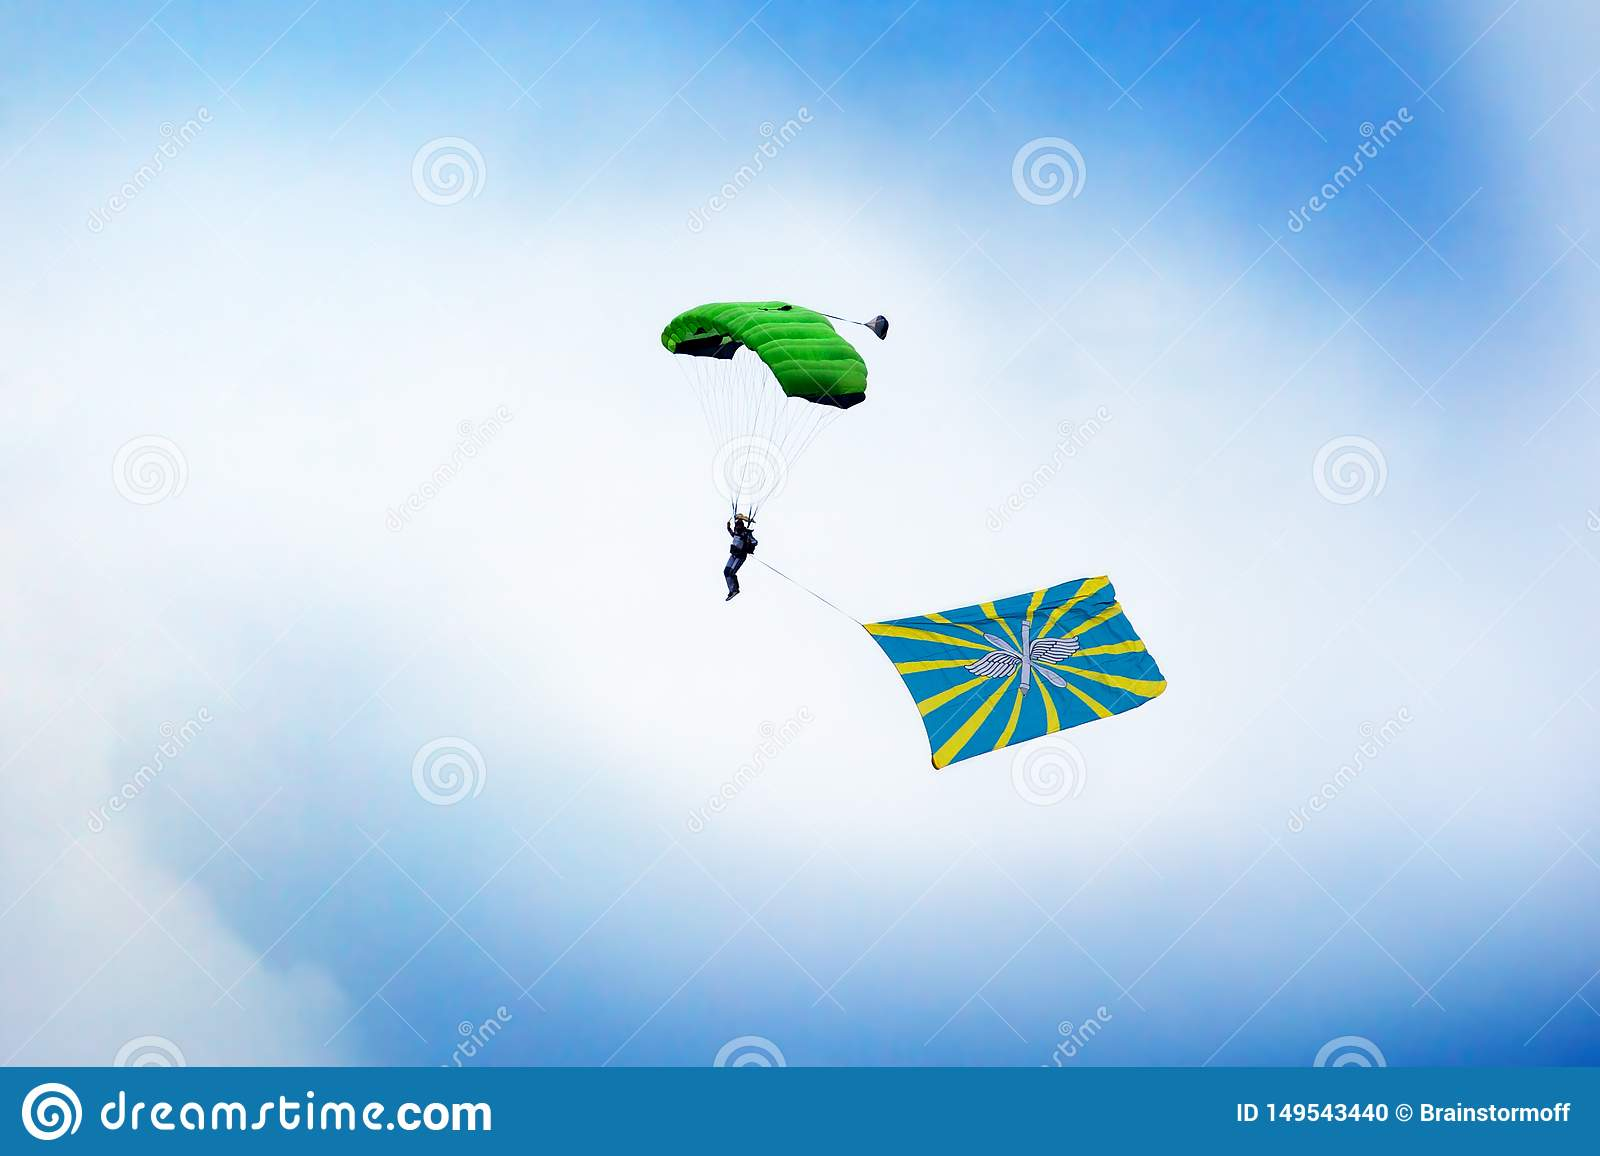 Russian paratrooper jumps with a parachute with Flag of Russian Air Force on clear blue sky and white clouds background